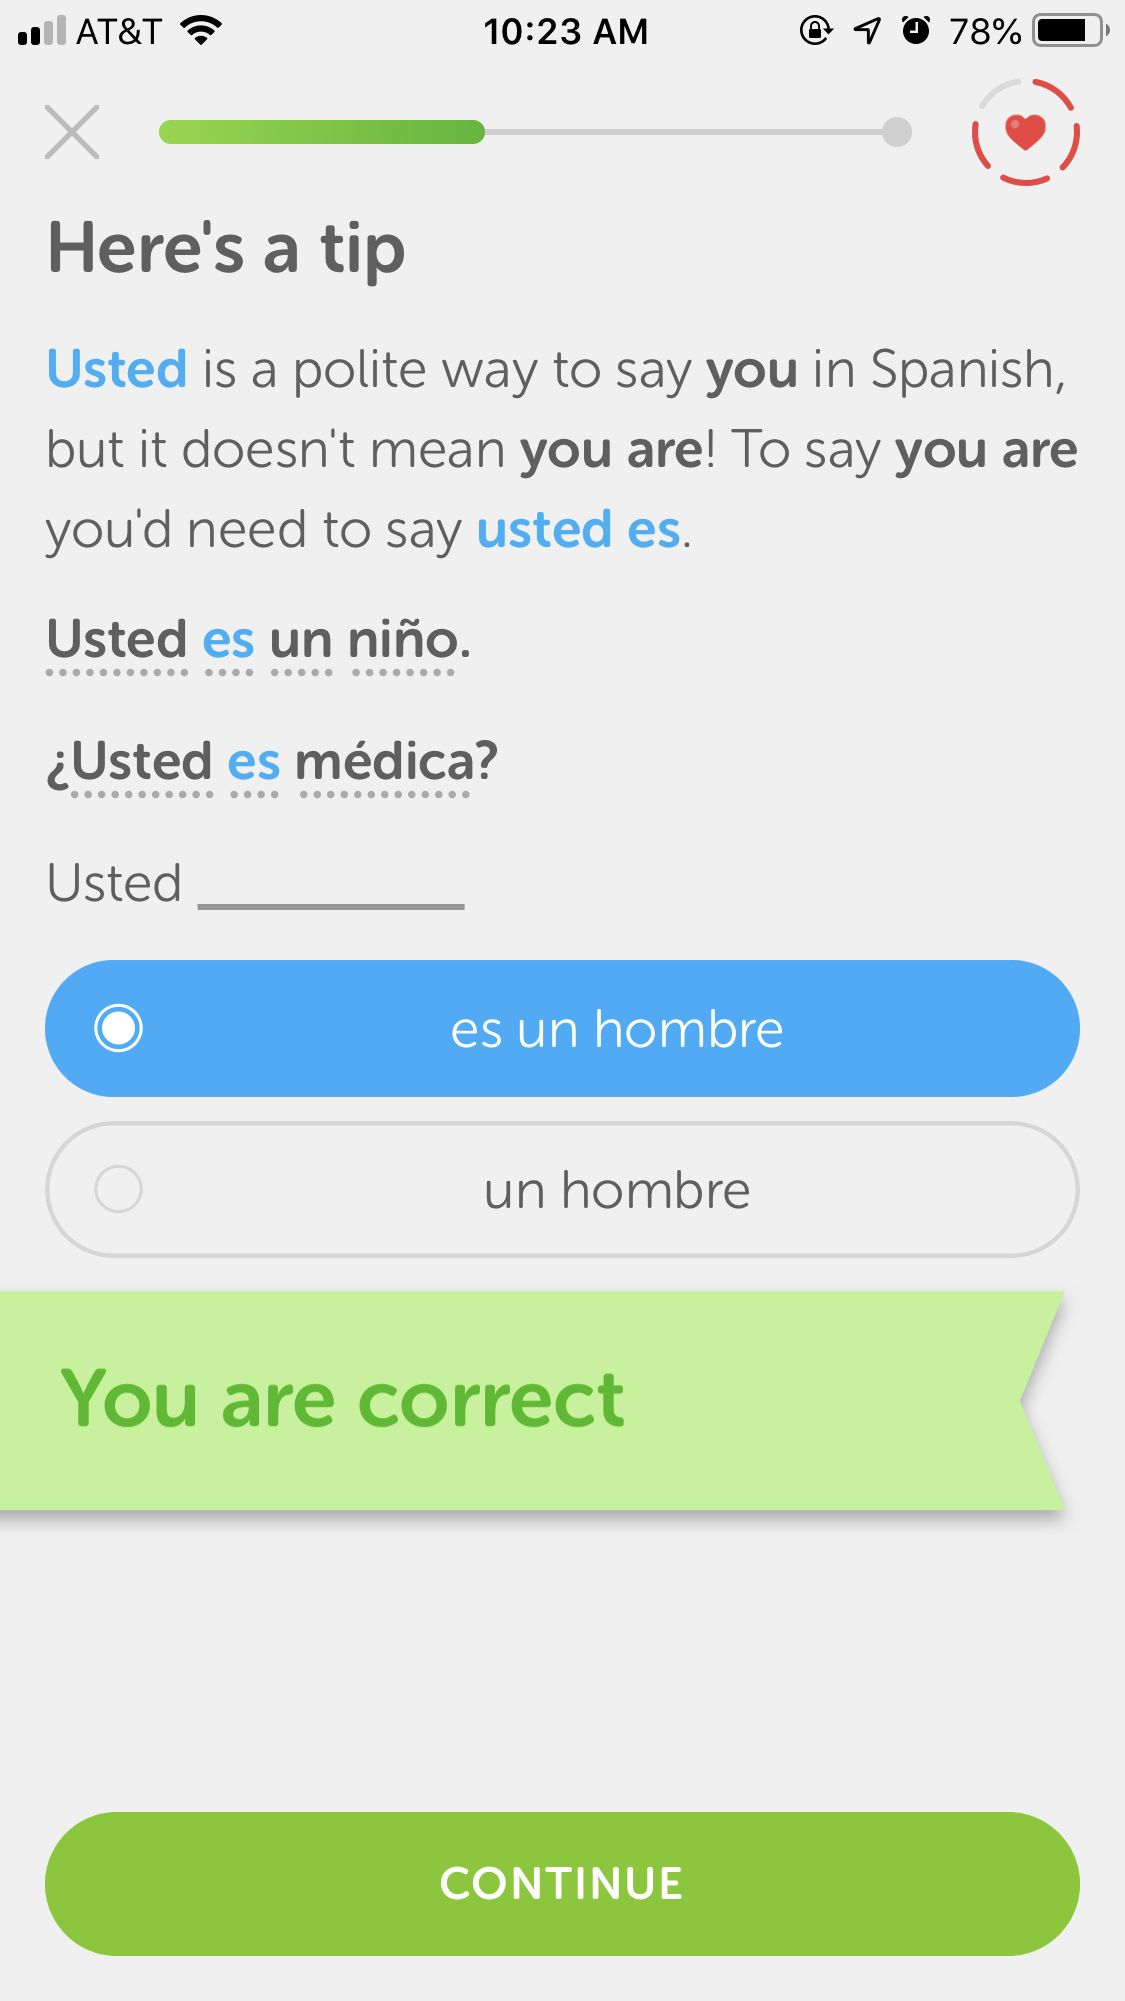 Pin By Queen On Learning Spanish Learning Spanish Un Hombre Learning